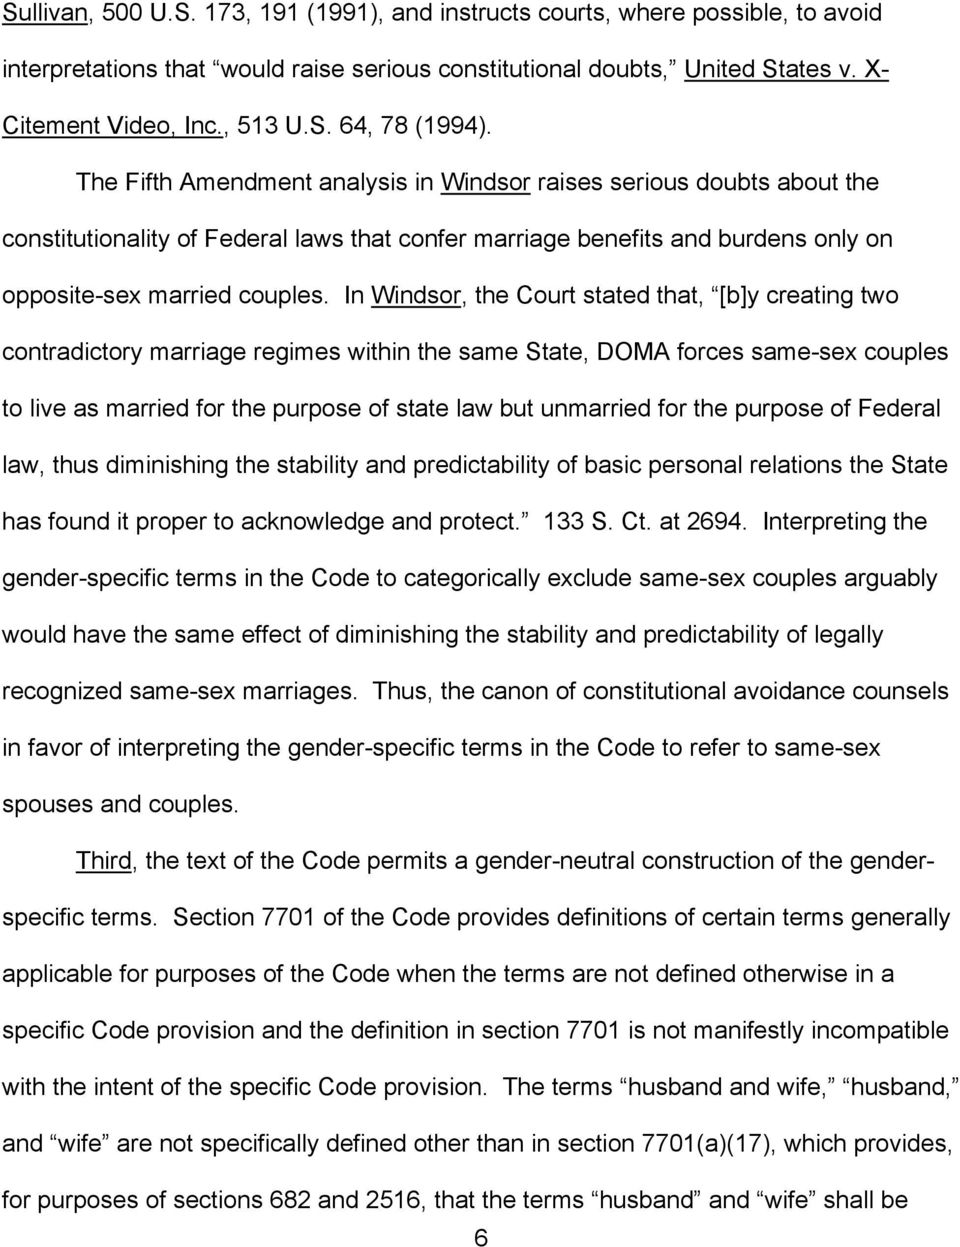 In Windsor, the Court stated that, [b]y creating two contradictory marriage regimes within the same State, DOMA forces same-sex couples to live as married for the purpose of state law but unmarried